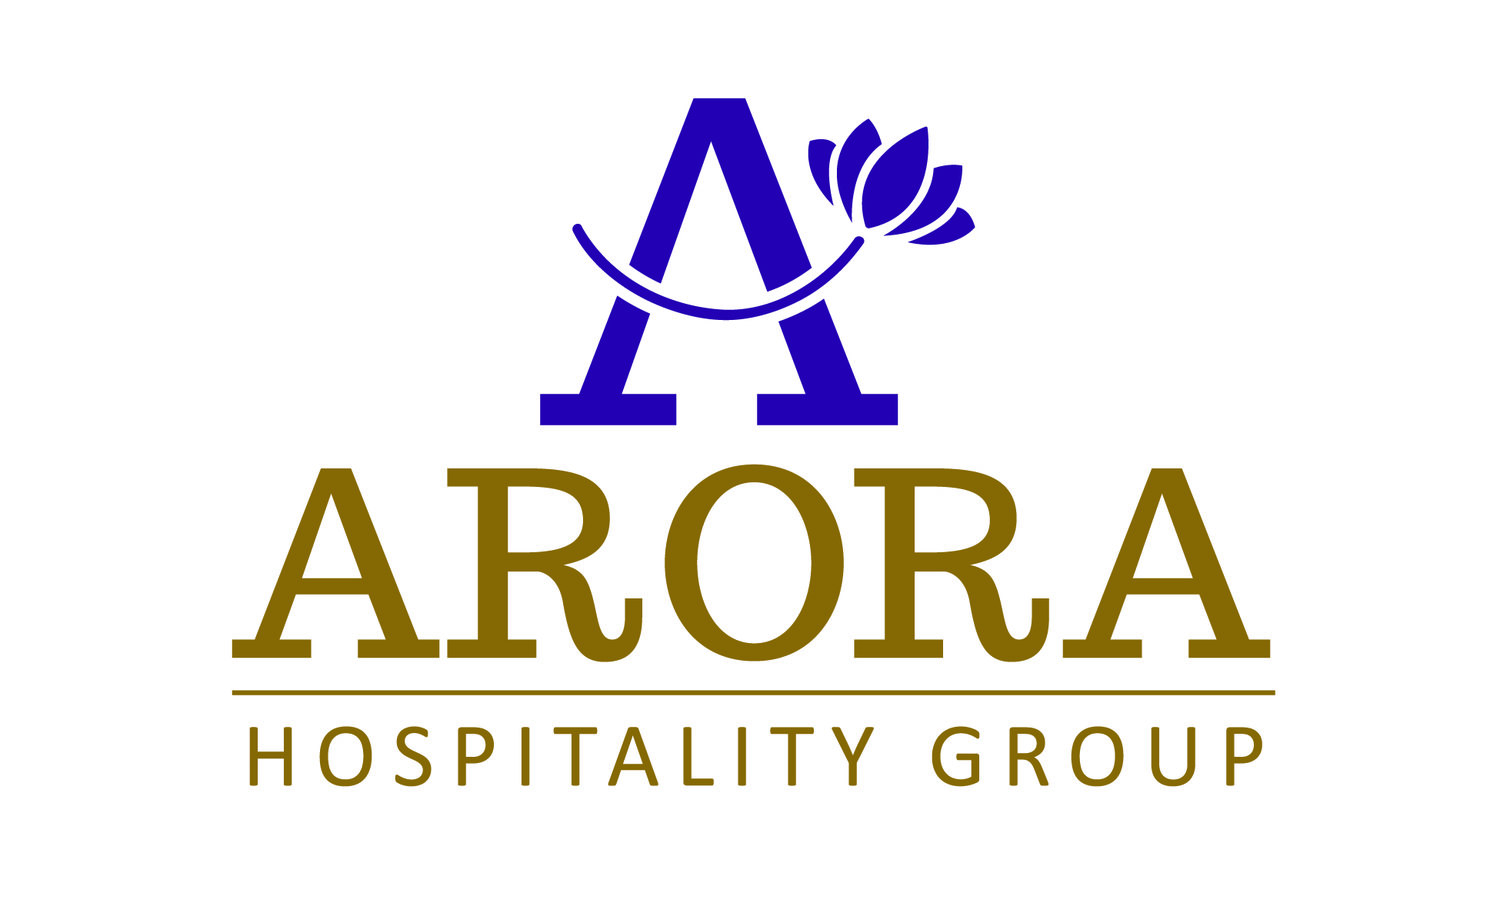 Arora Hospitality Group